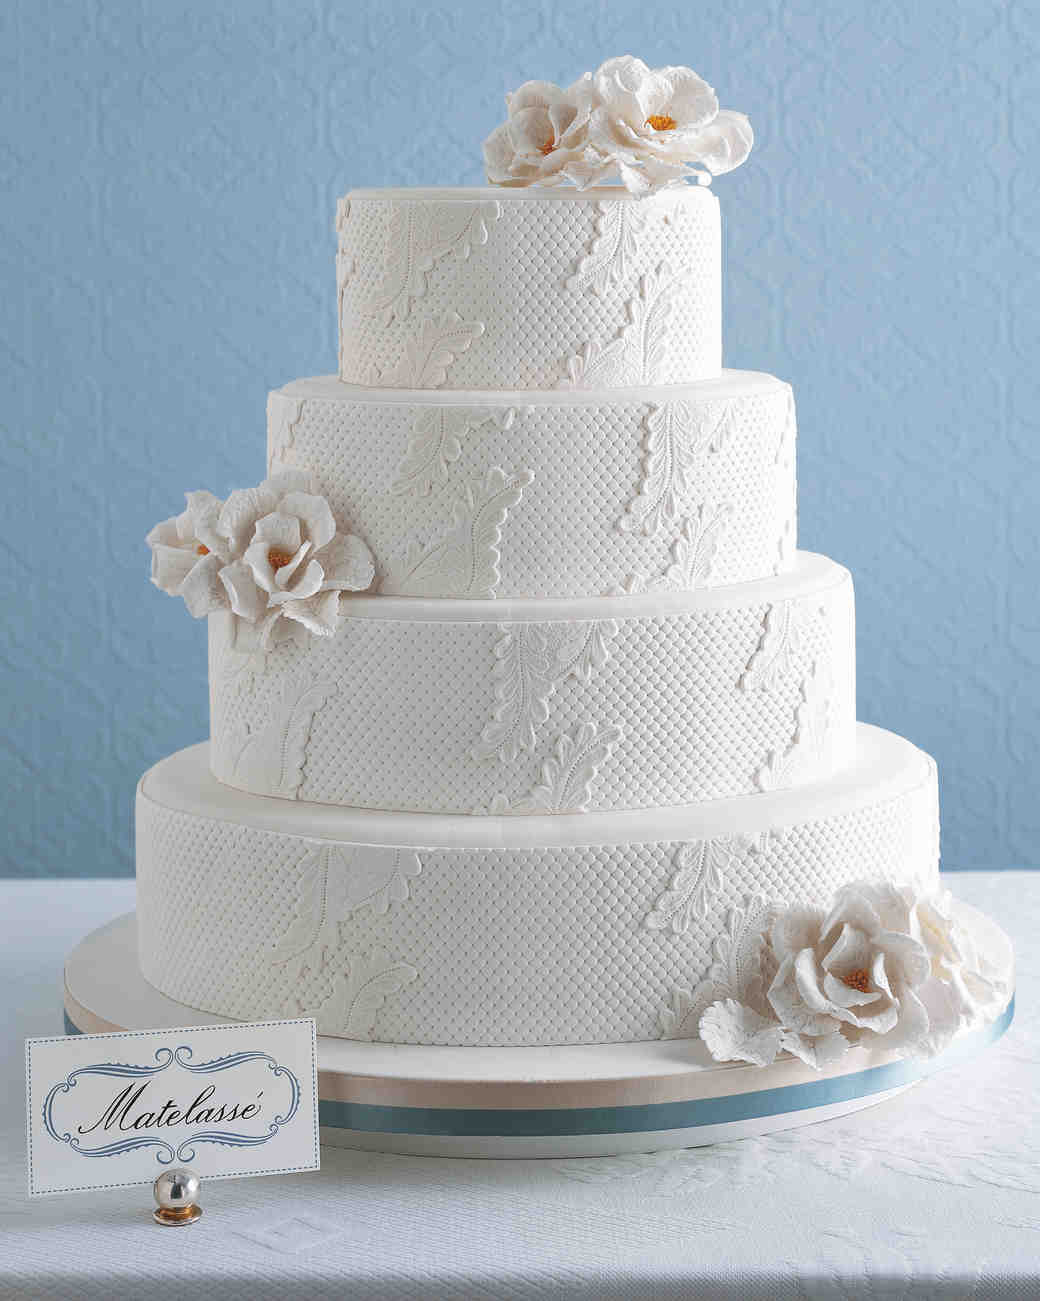 20 Years of Gorgeous Wedding Cakes by Pastry Chef Ron Ben ...